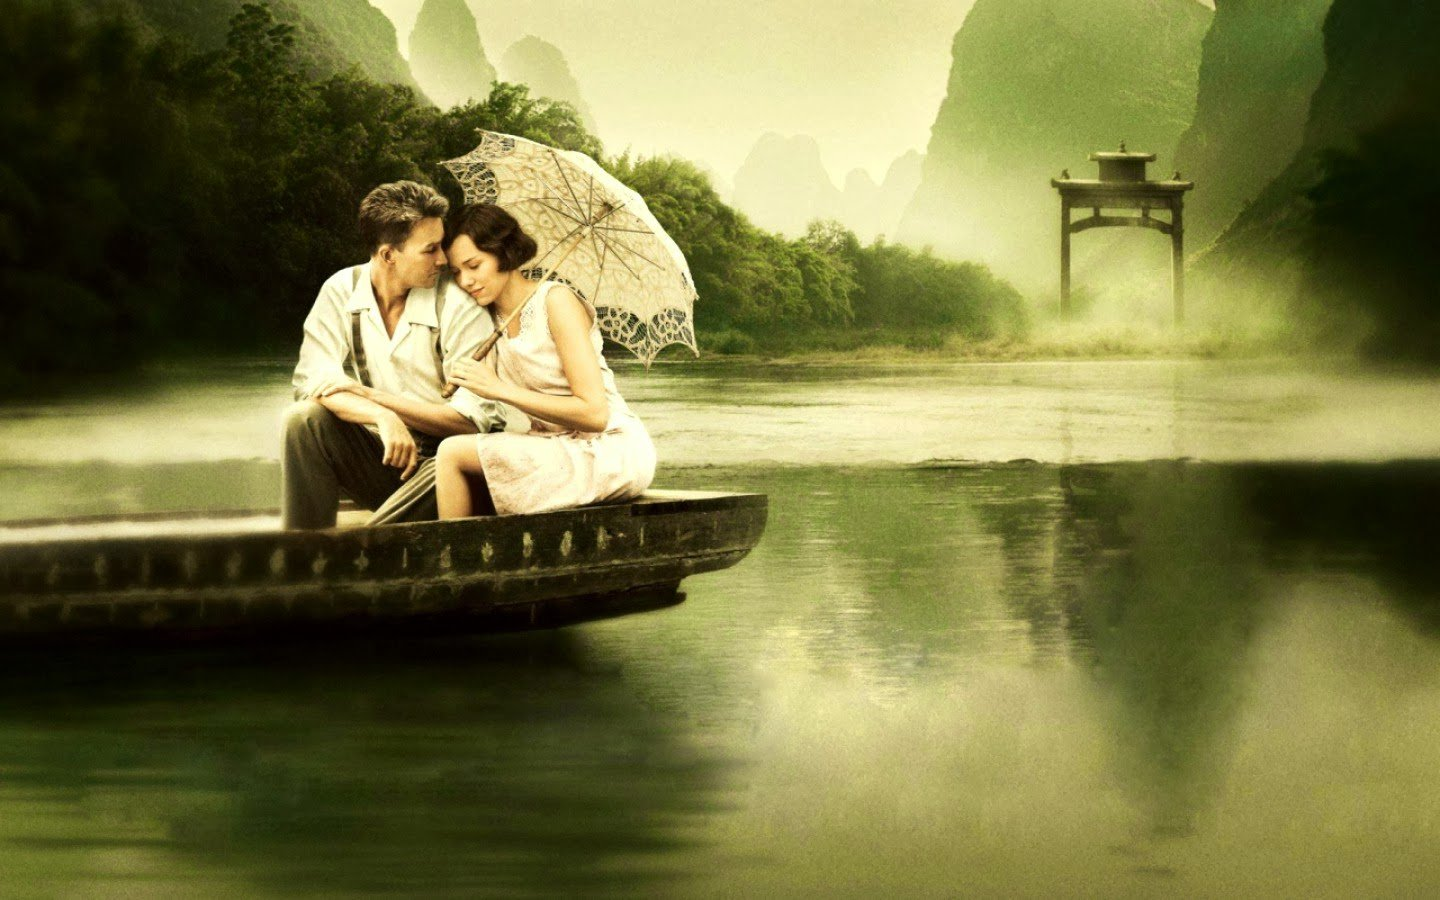 Romantic Couple HD Wallpaper and Image. couple in boat